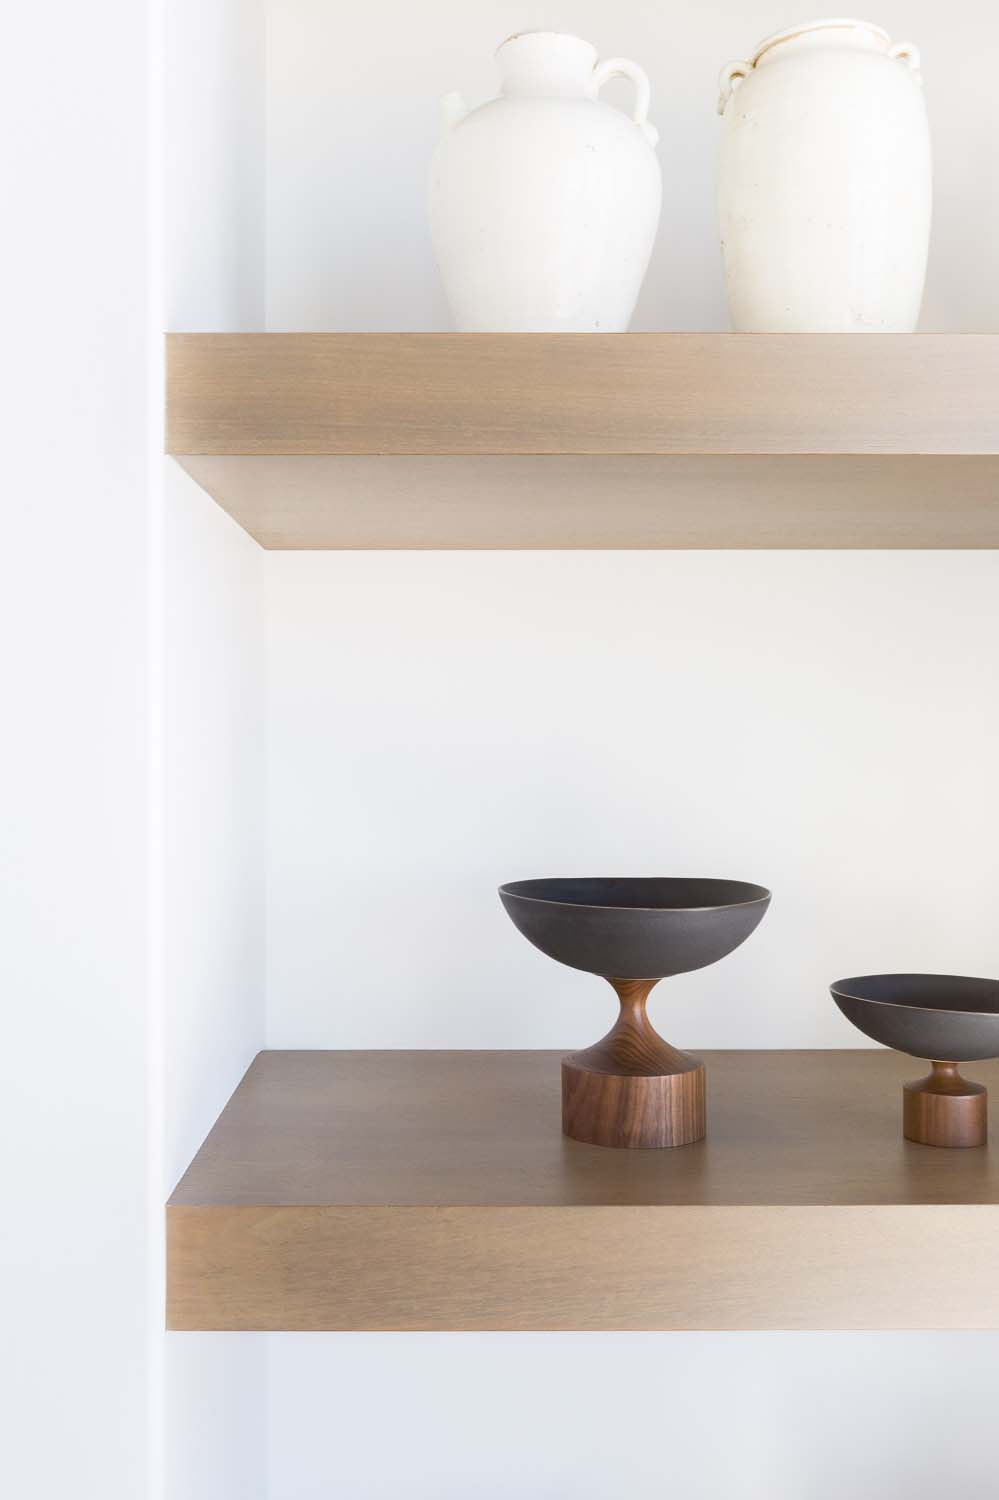 mountain-ranch-house-shelf-detail